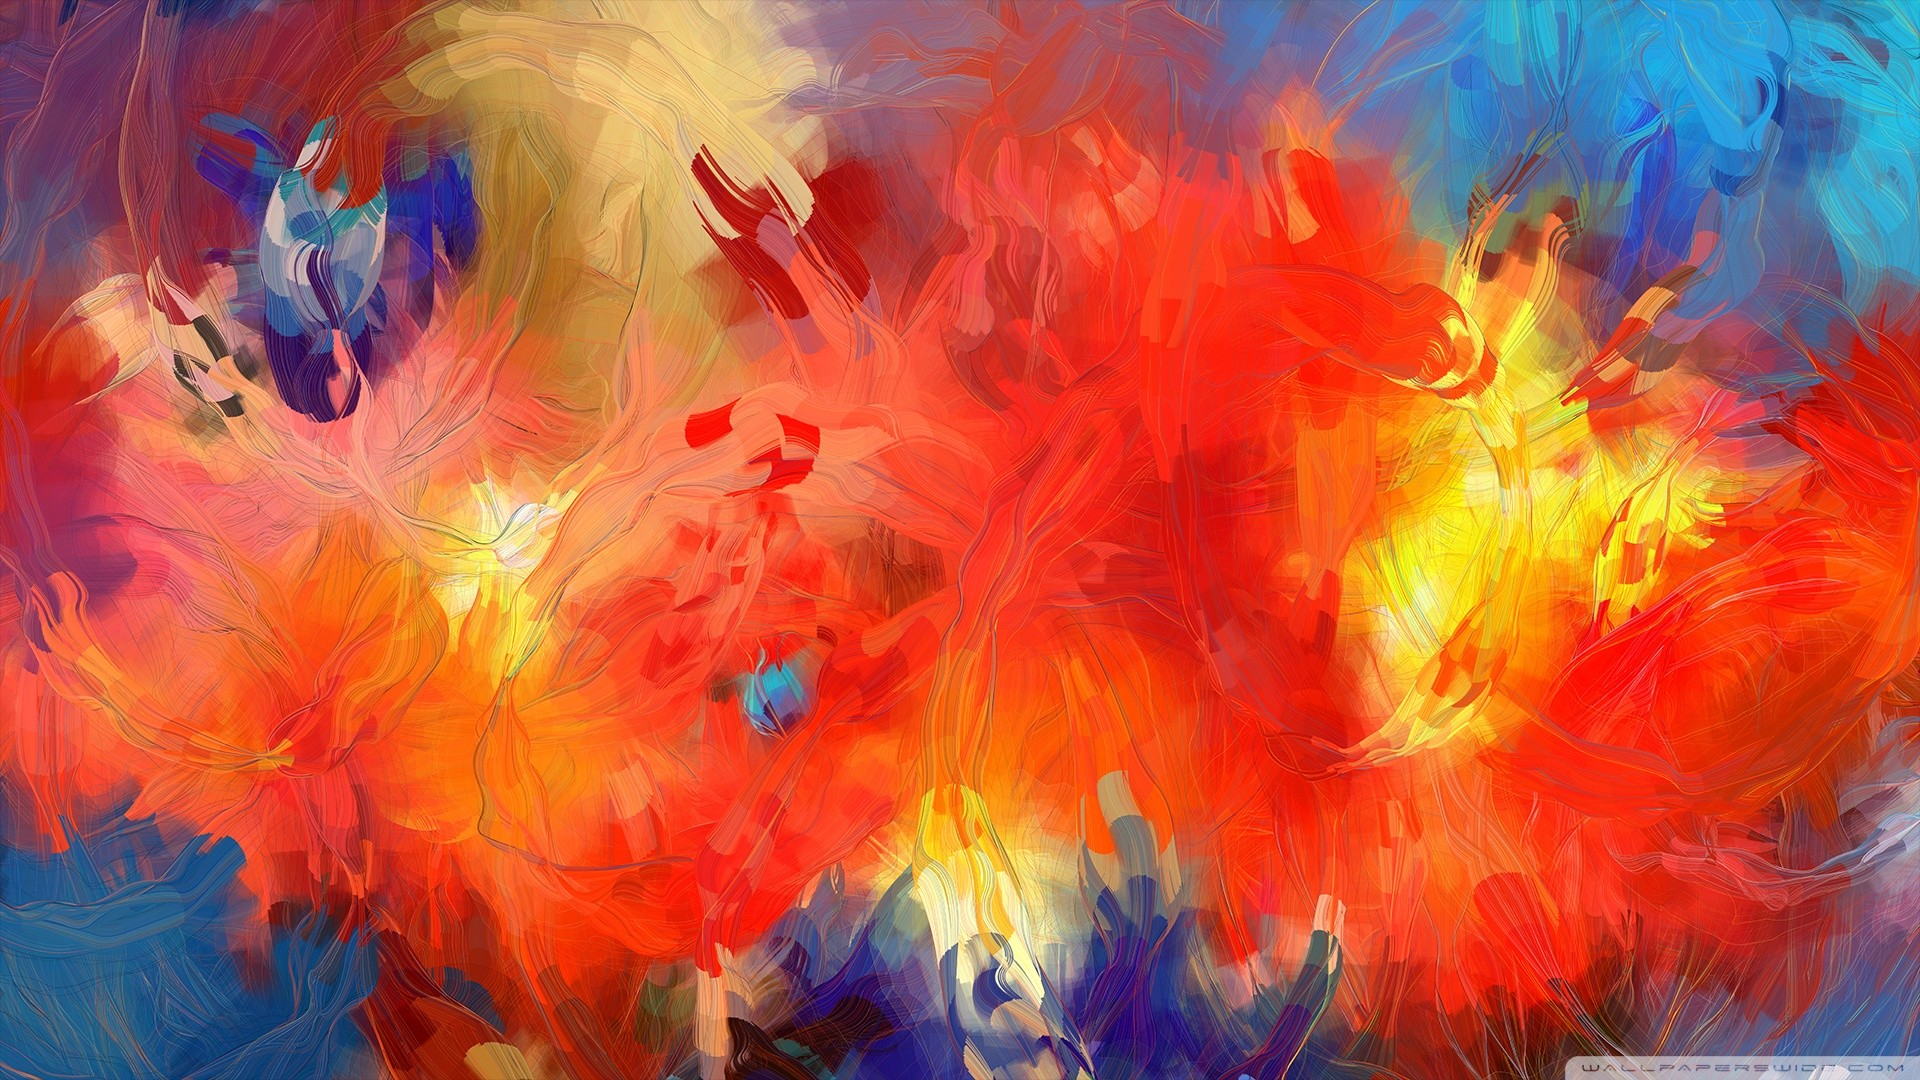 1920x1080 Famous Abstract Art Paintings Wallpaper Free Desktop